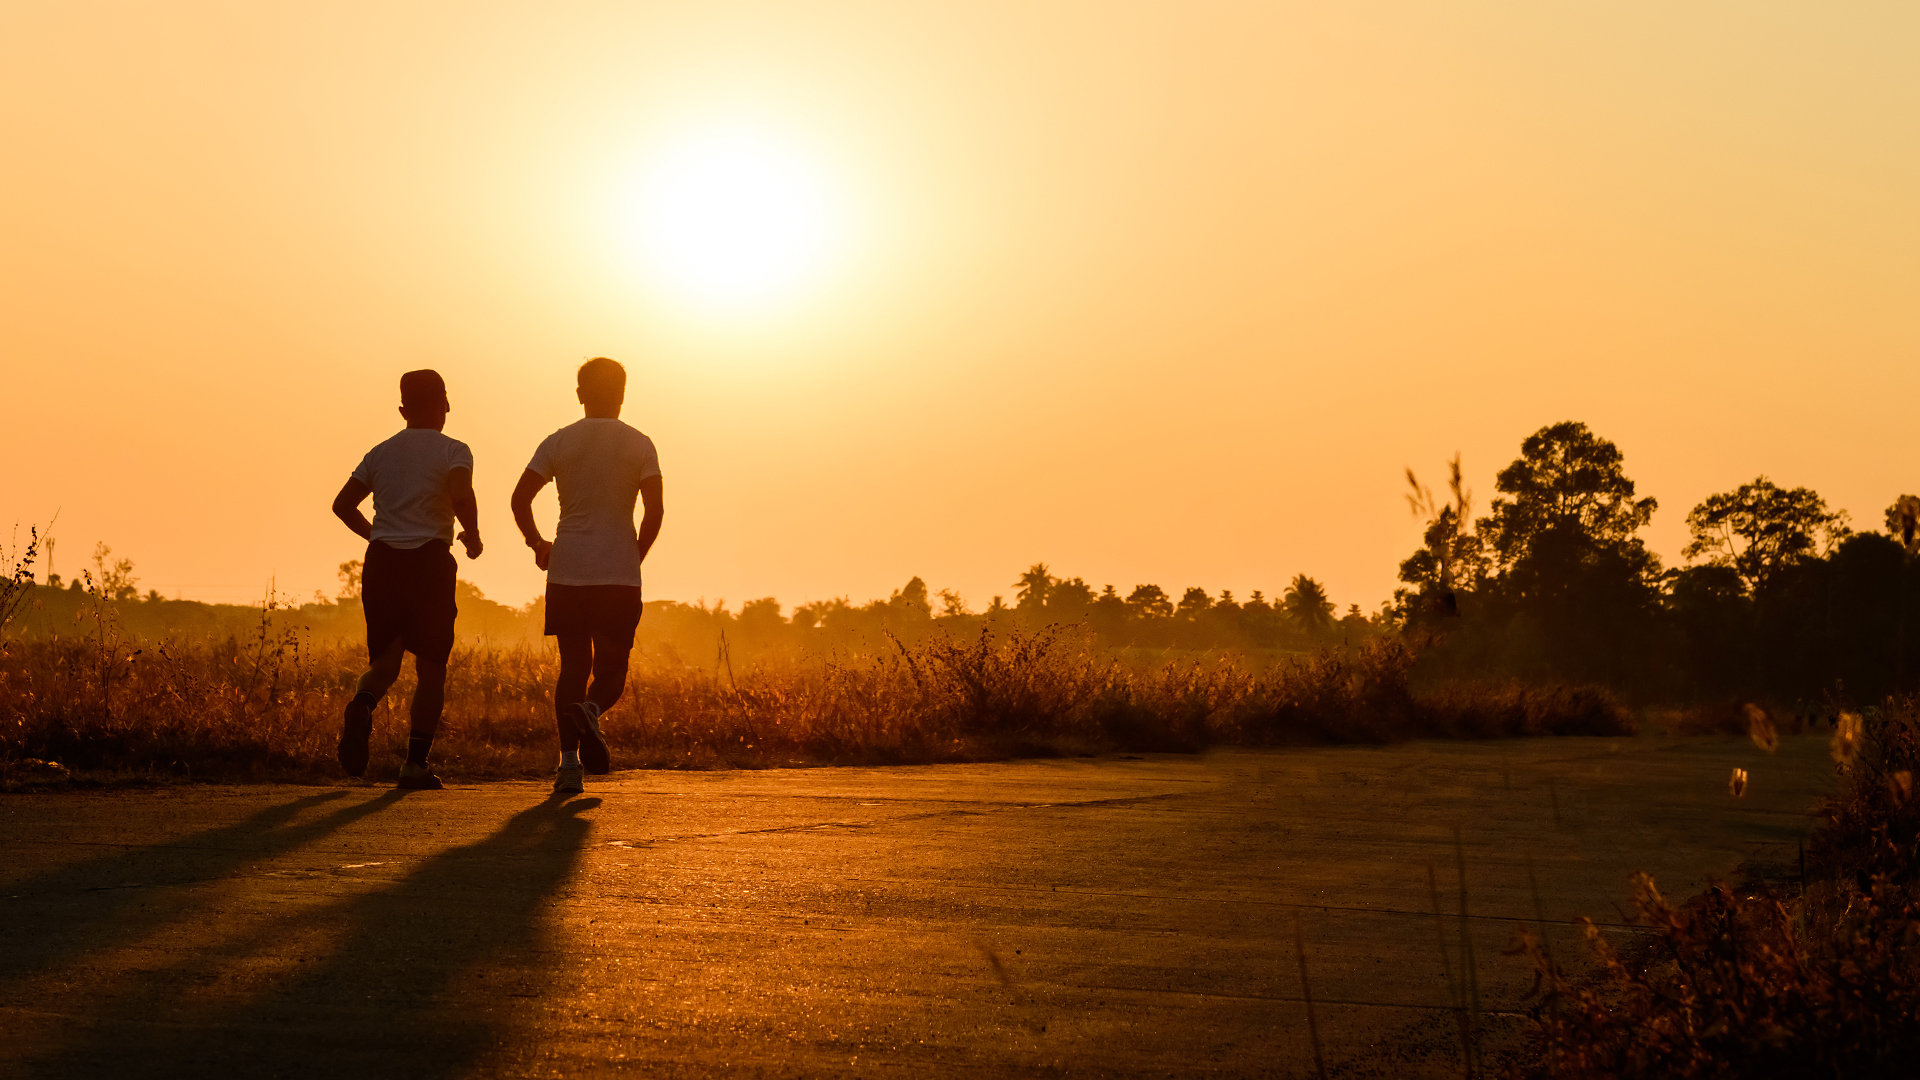 Two people running toward a sunset